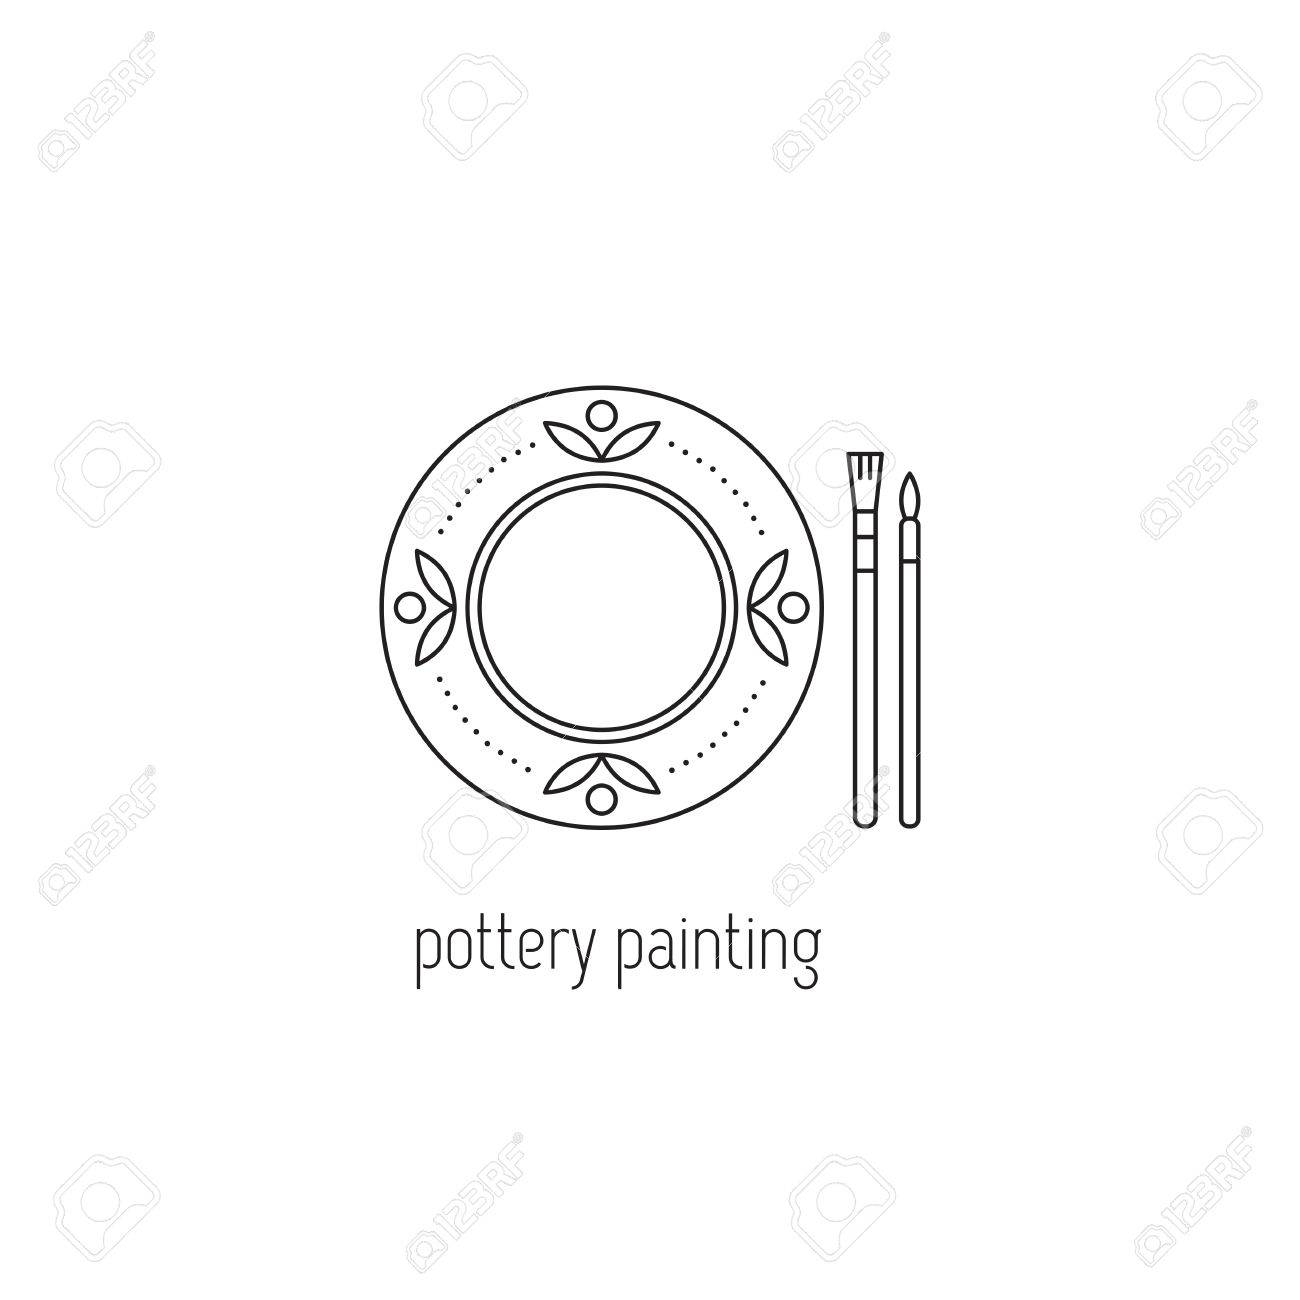 Pottery Painting Vector Thin Line Icon. Handmade Decorated Ceramic ...